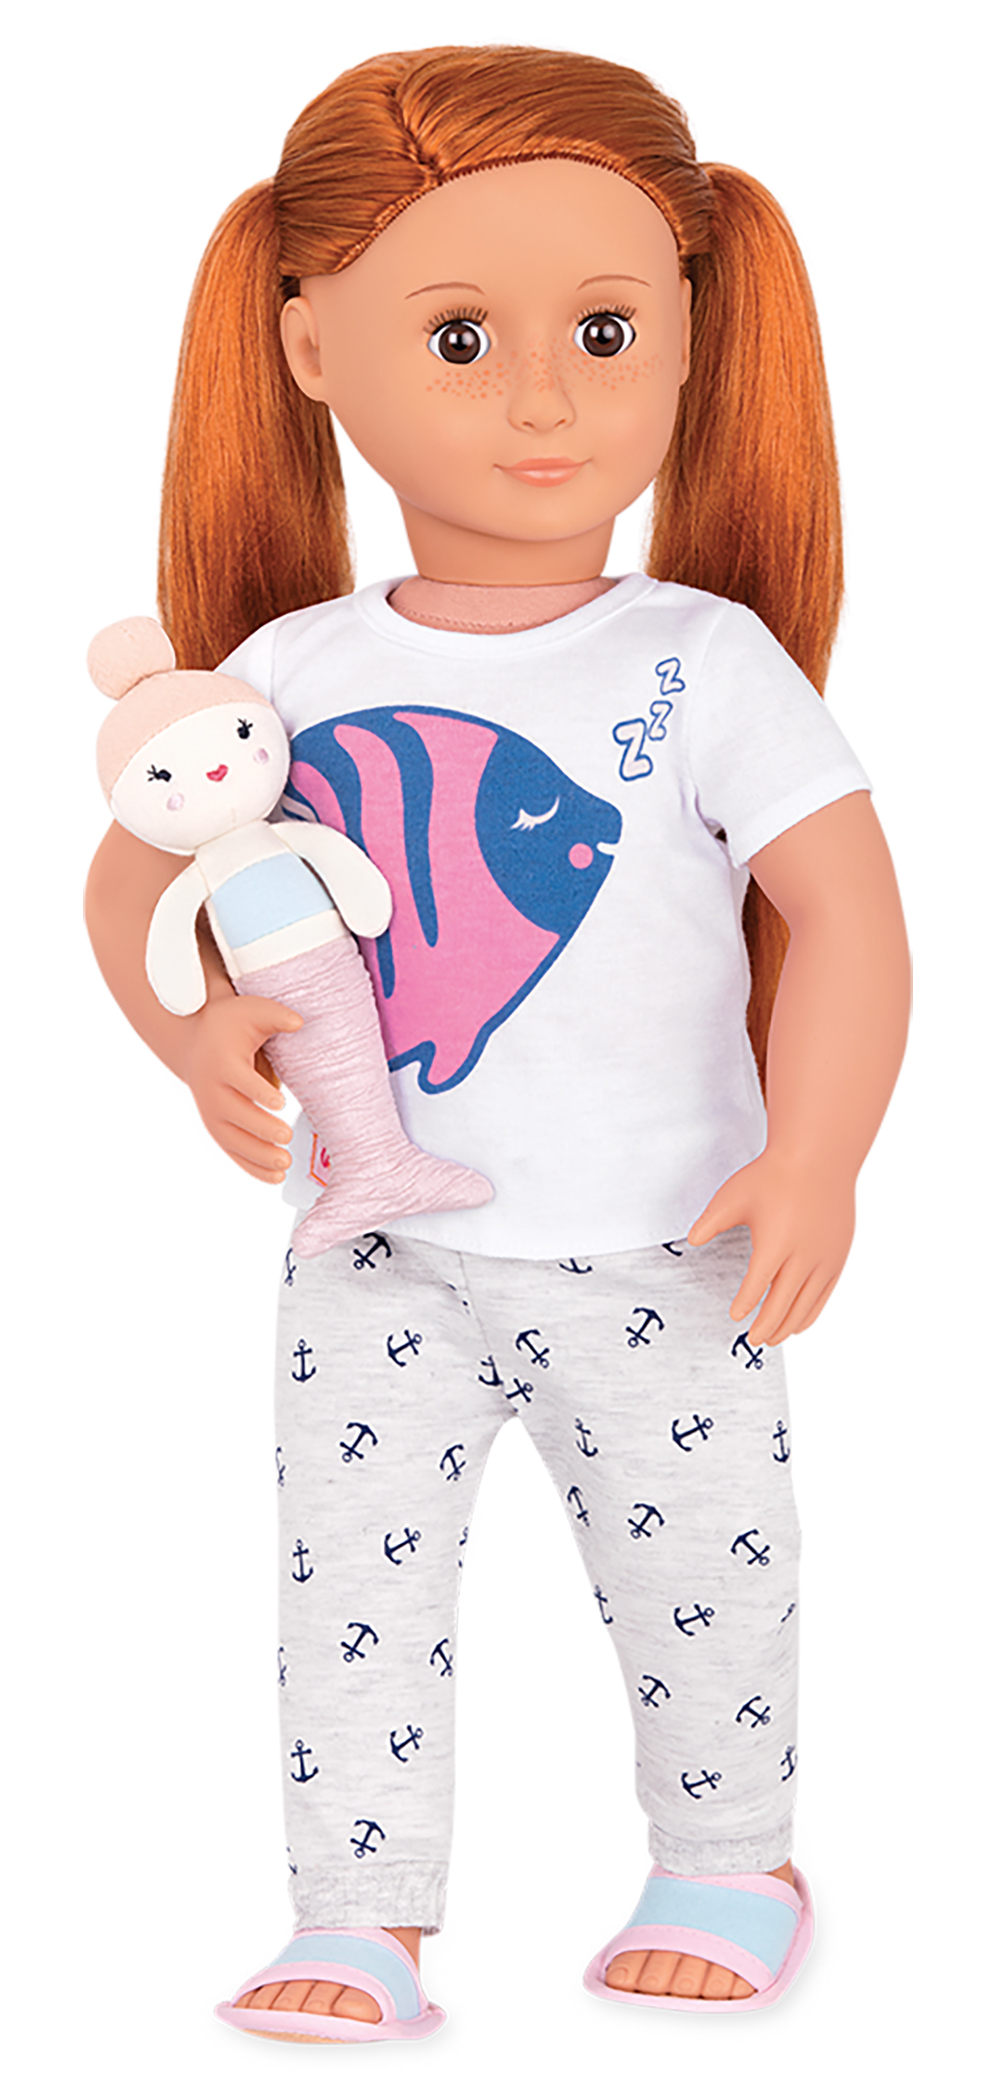 Outfit OG - Seaside Sleepover for 18 Doll